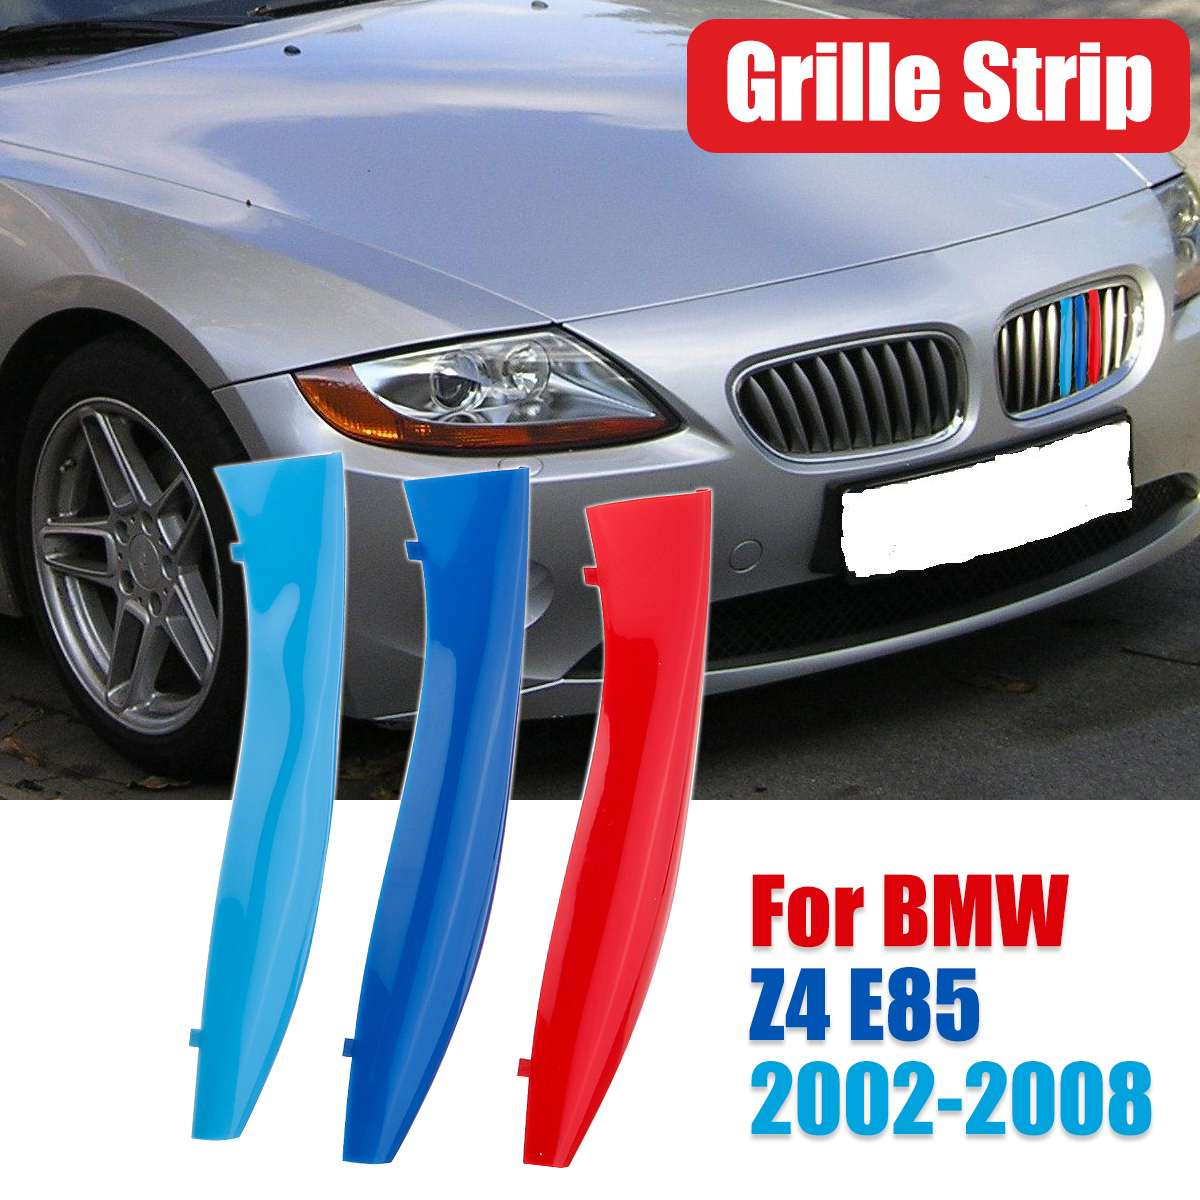 Car Front Grille Trim Sport Strips Cover Stickers For BMW Z4 E85 2002-2008 Front Kidney Grill Grille Cover Clip Trim